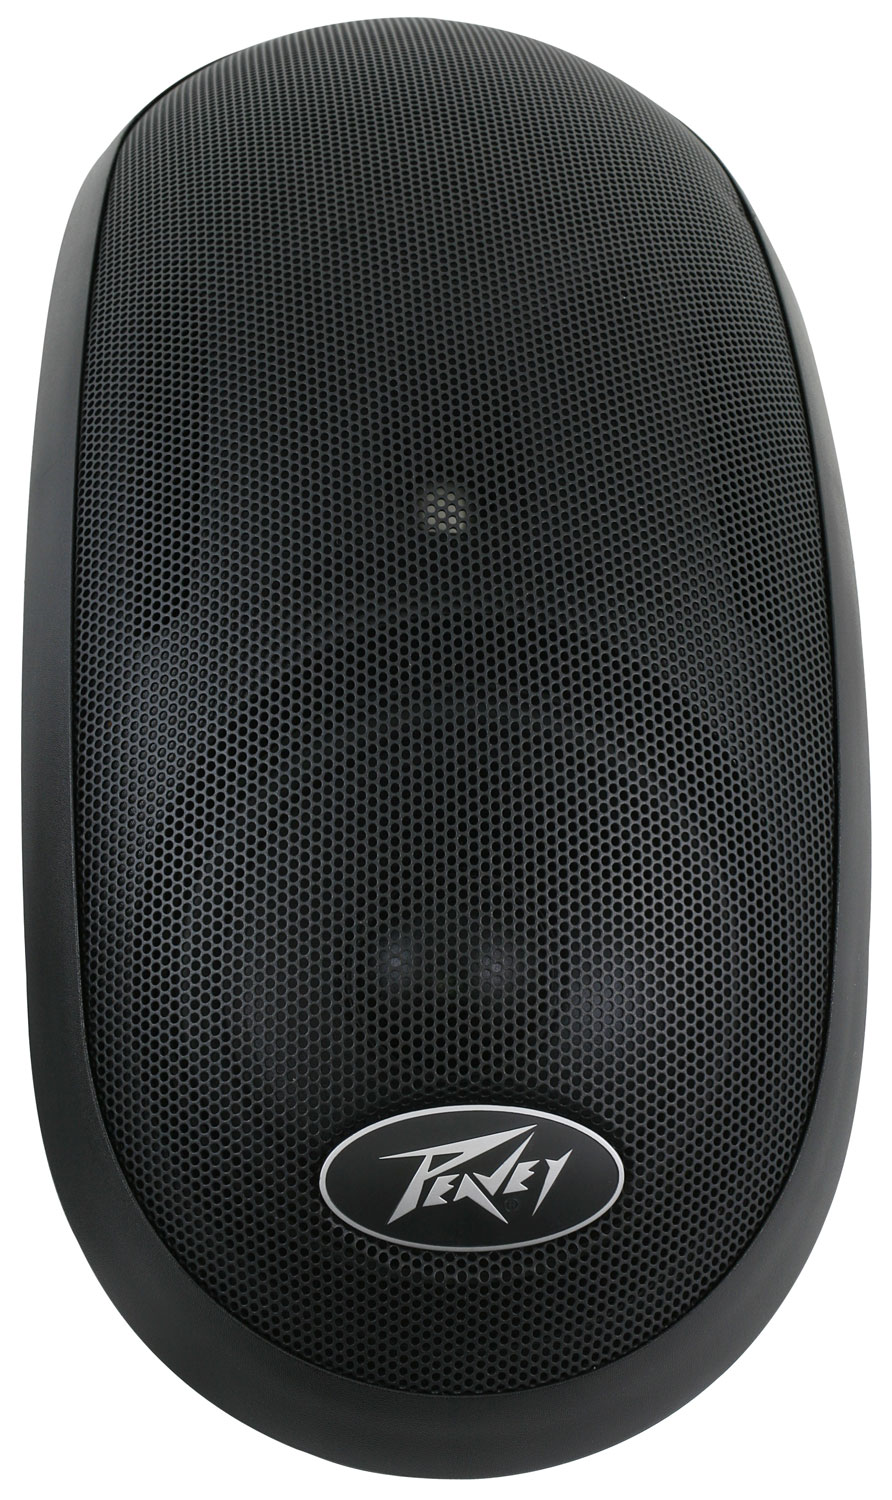 Peavey Impulse® 261T Black